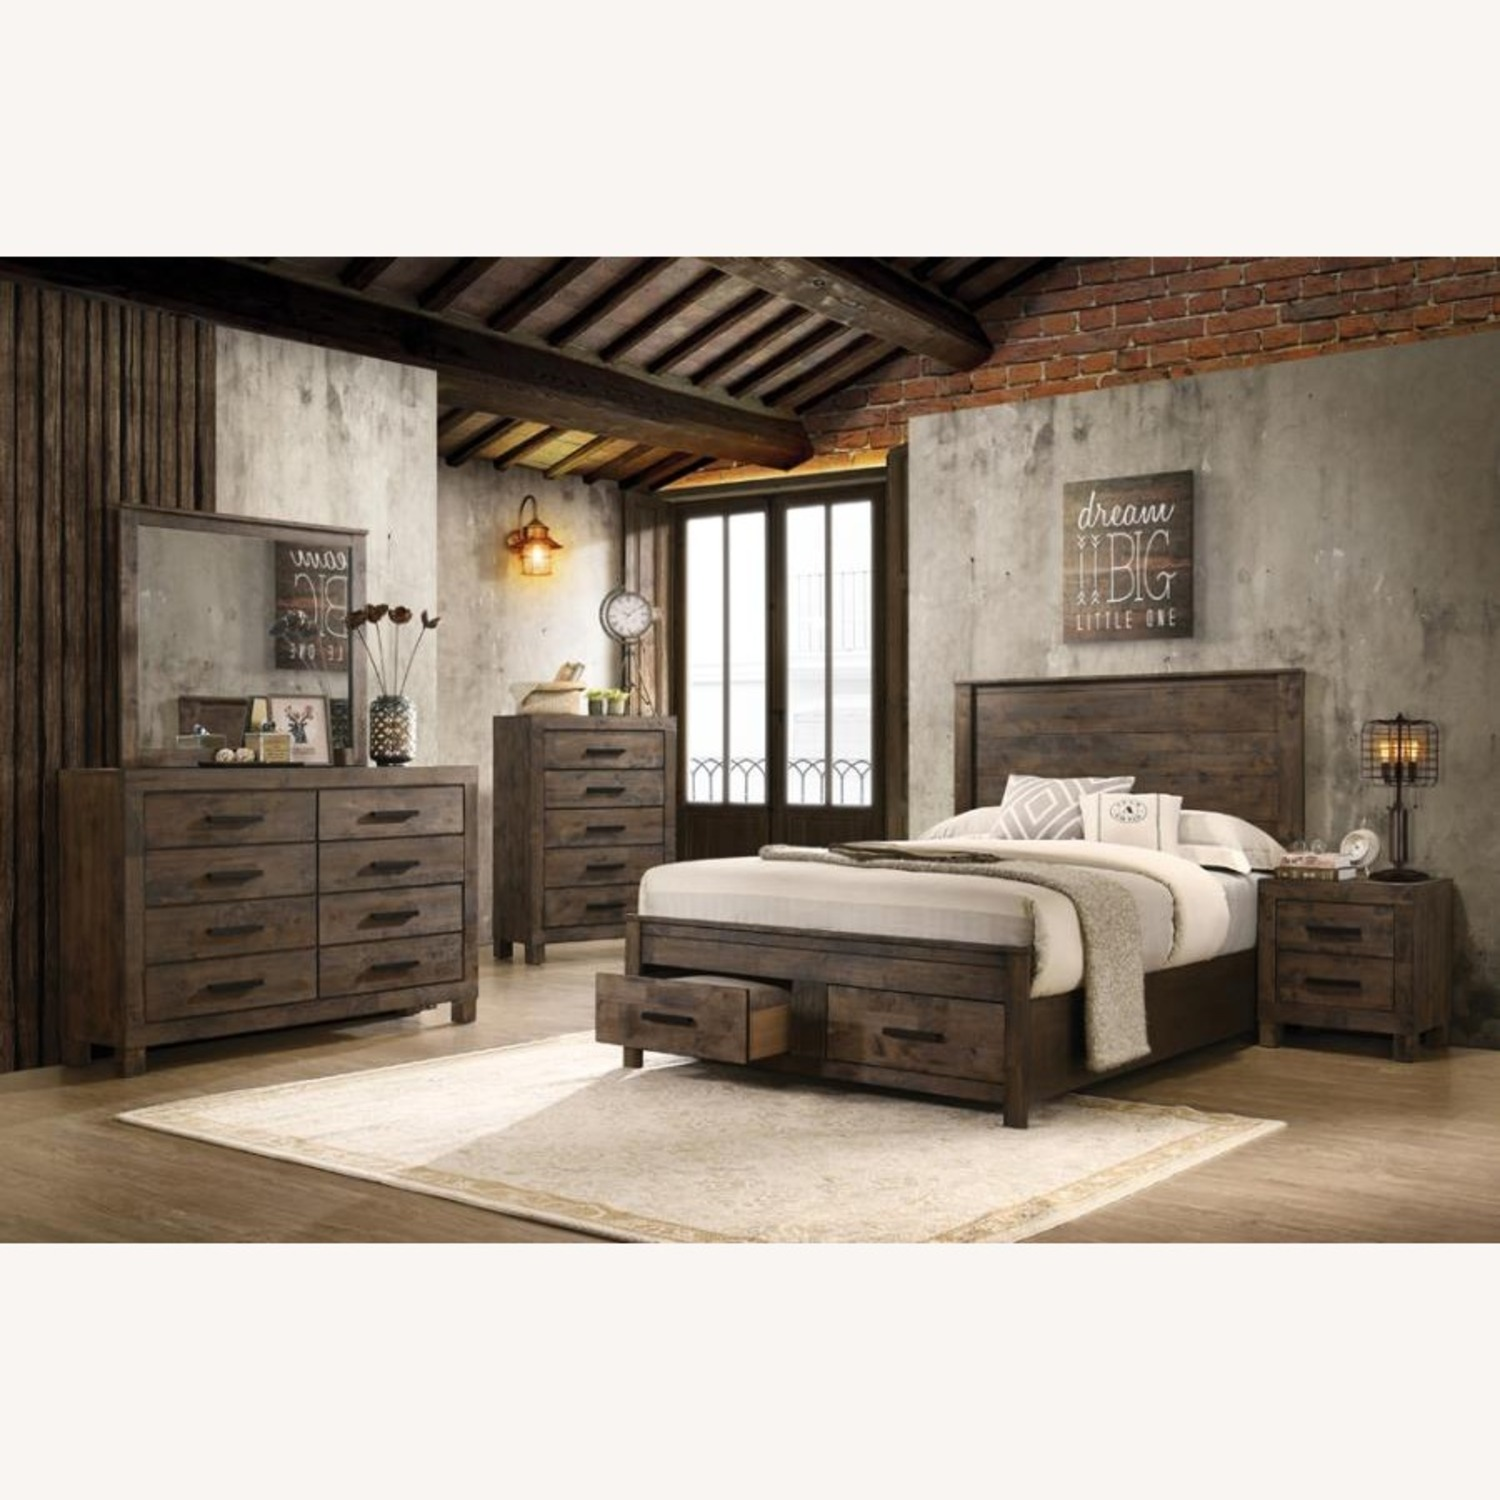 Classic Chest W/ 5-Drawer In Rustic Golden Brown - image-3